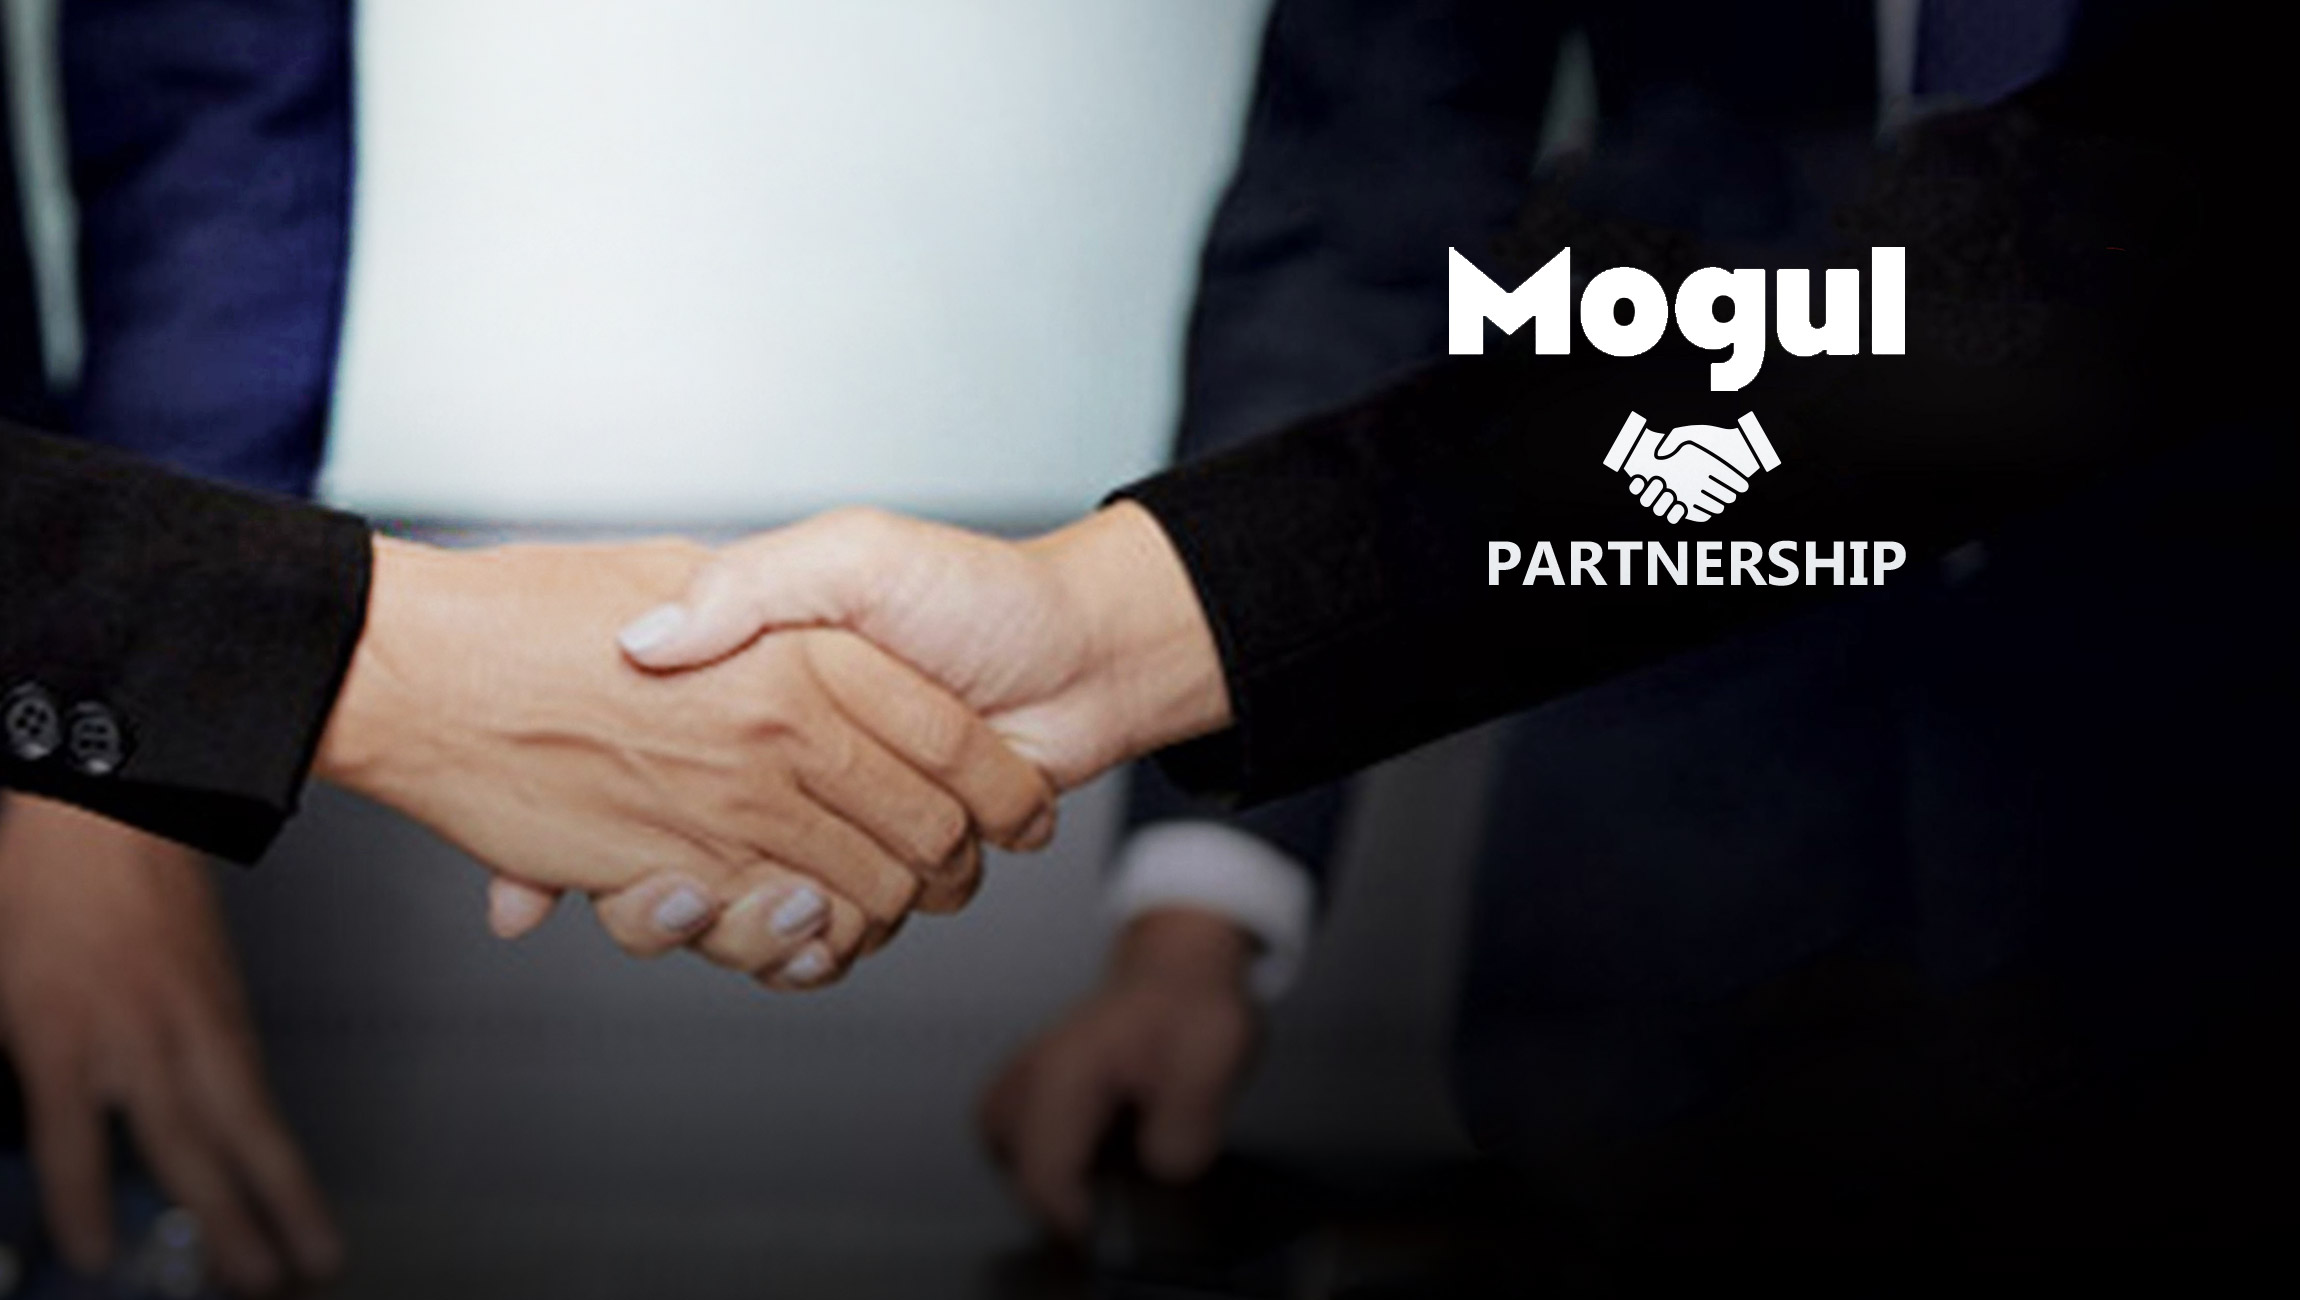 Mogul Partners With Company Leaders on Diversity and Inclusion to Bring More Women Into Positions of Power